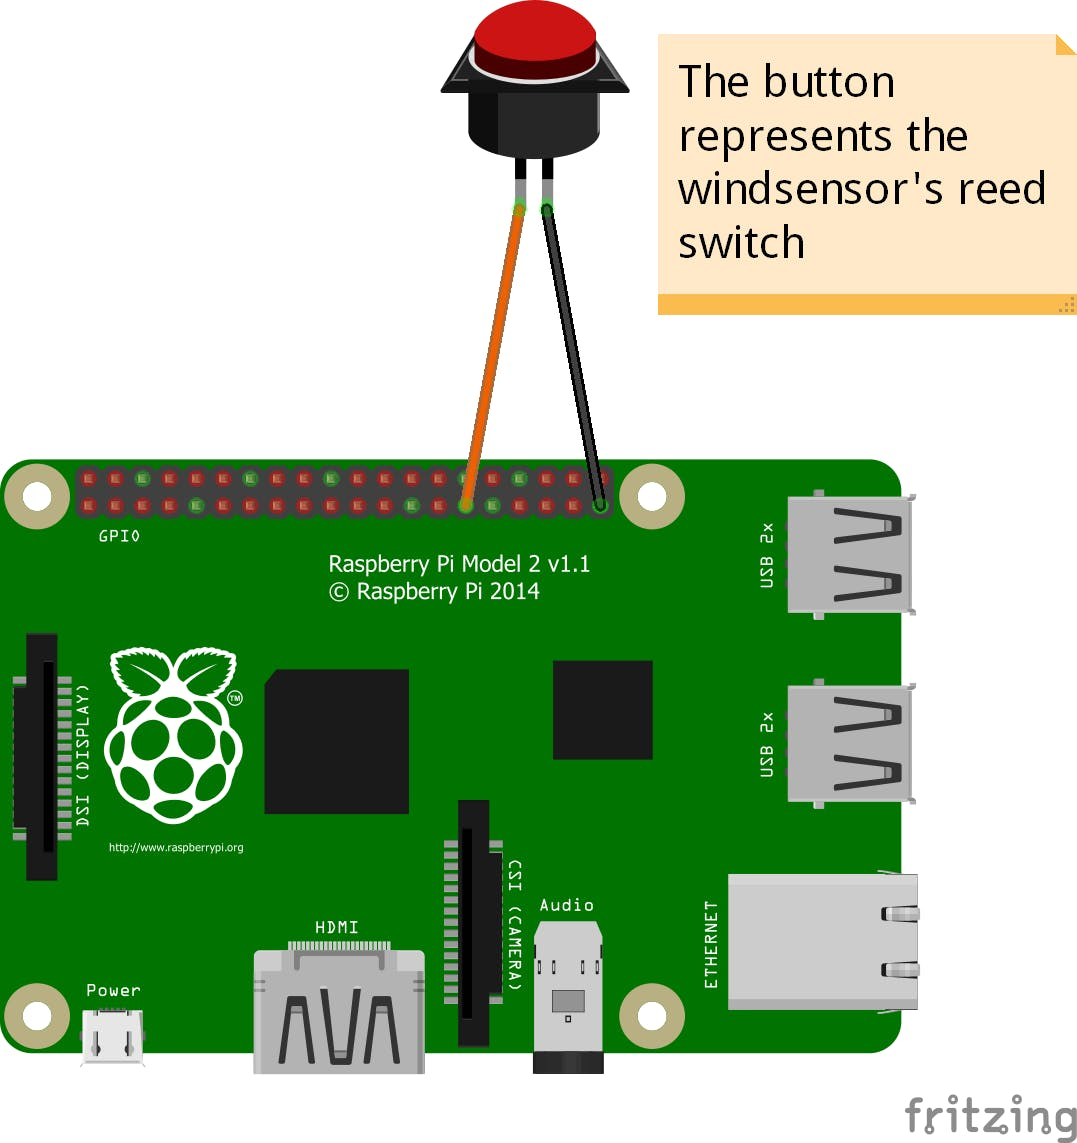 schematics for the wind sensor connecting to the gpio pins